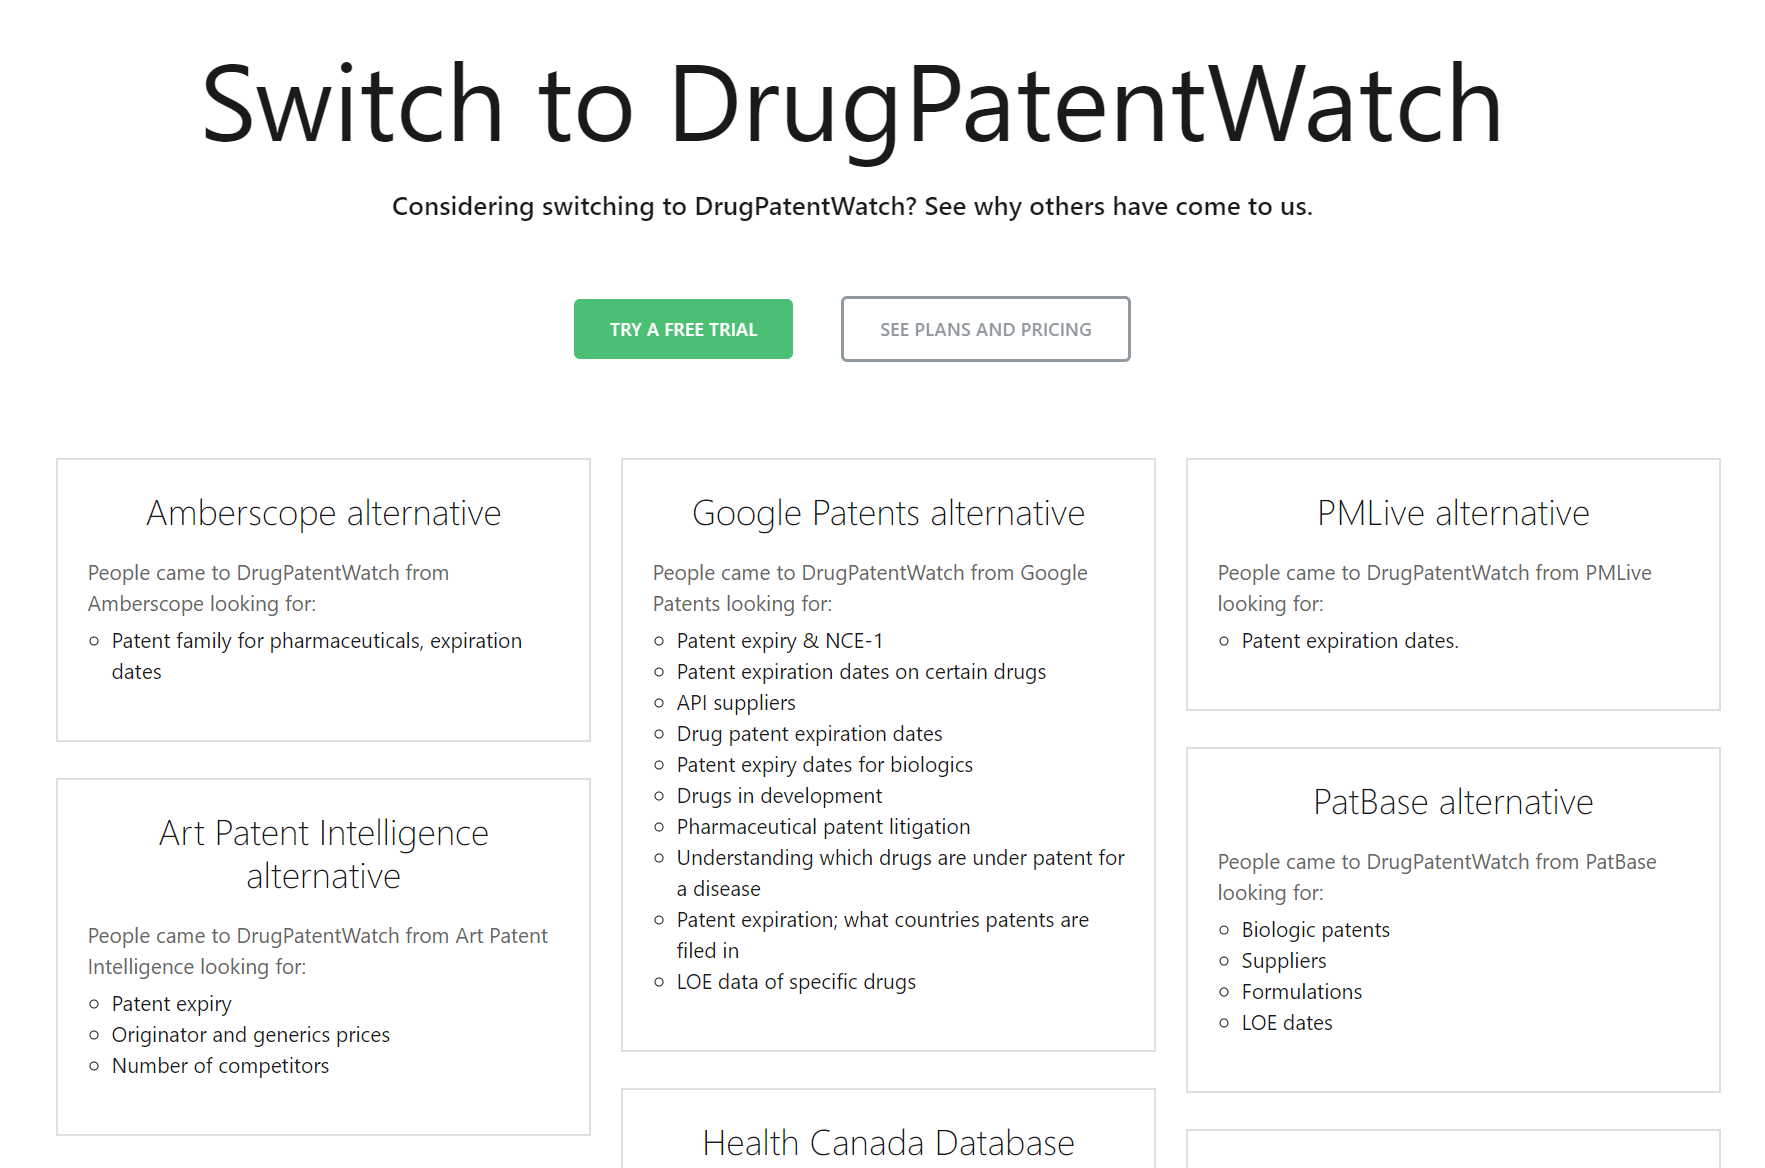 drugpatentwatch alternatives